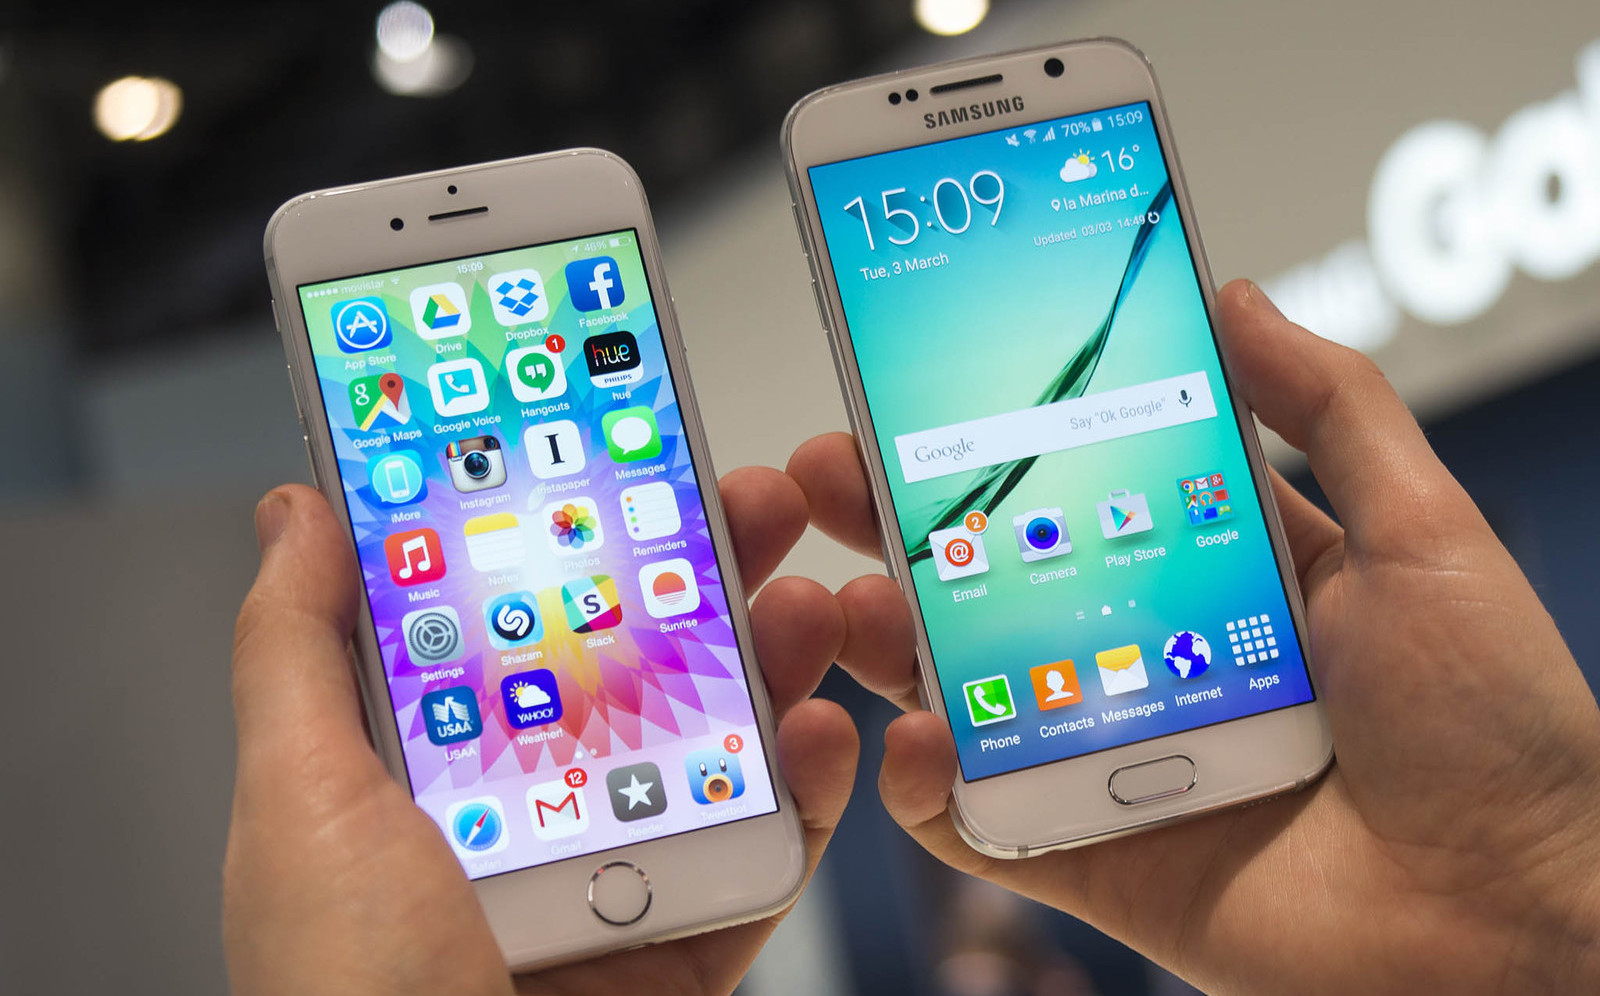 galaxy-s6-iphone-6-comparison-fronts-hands